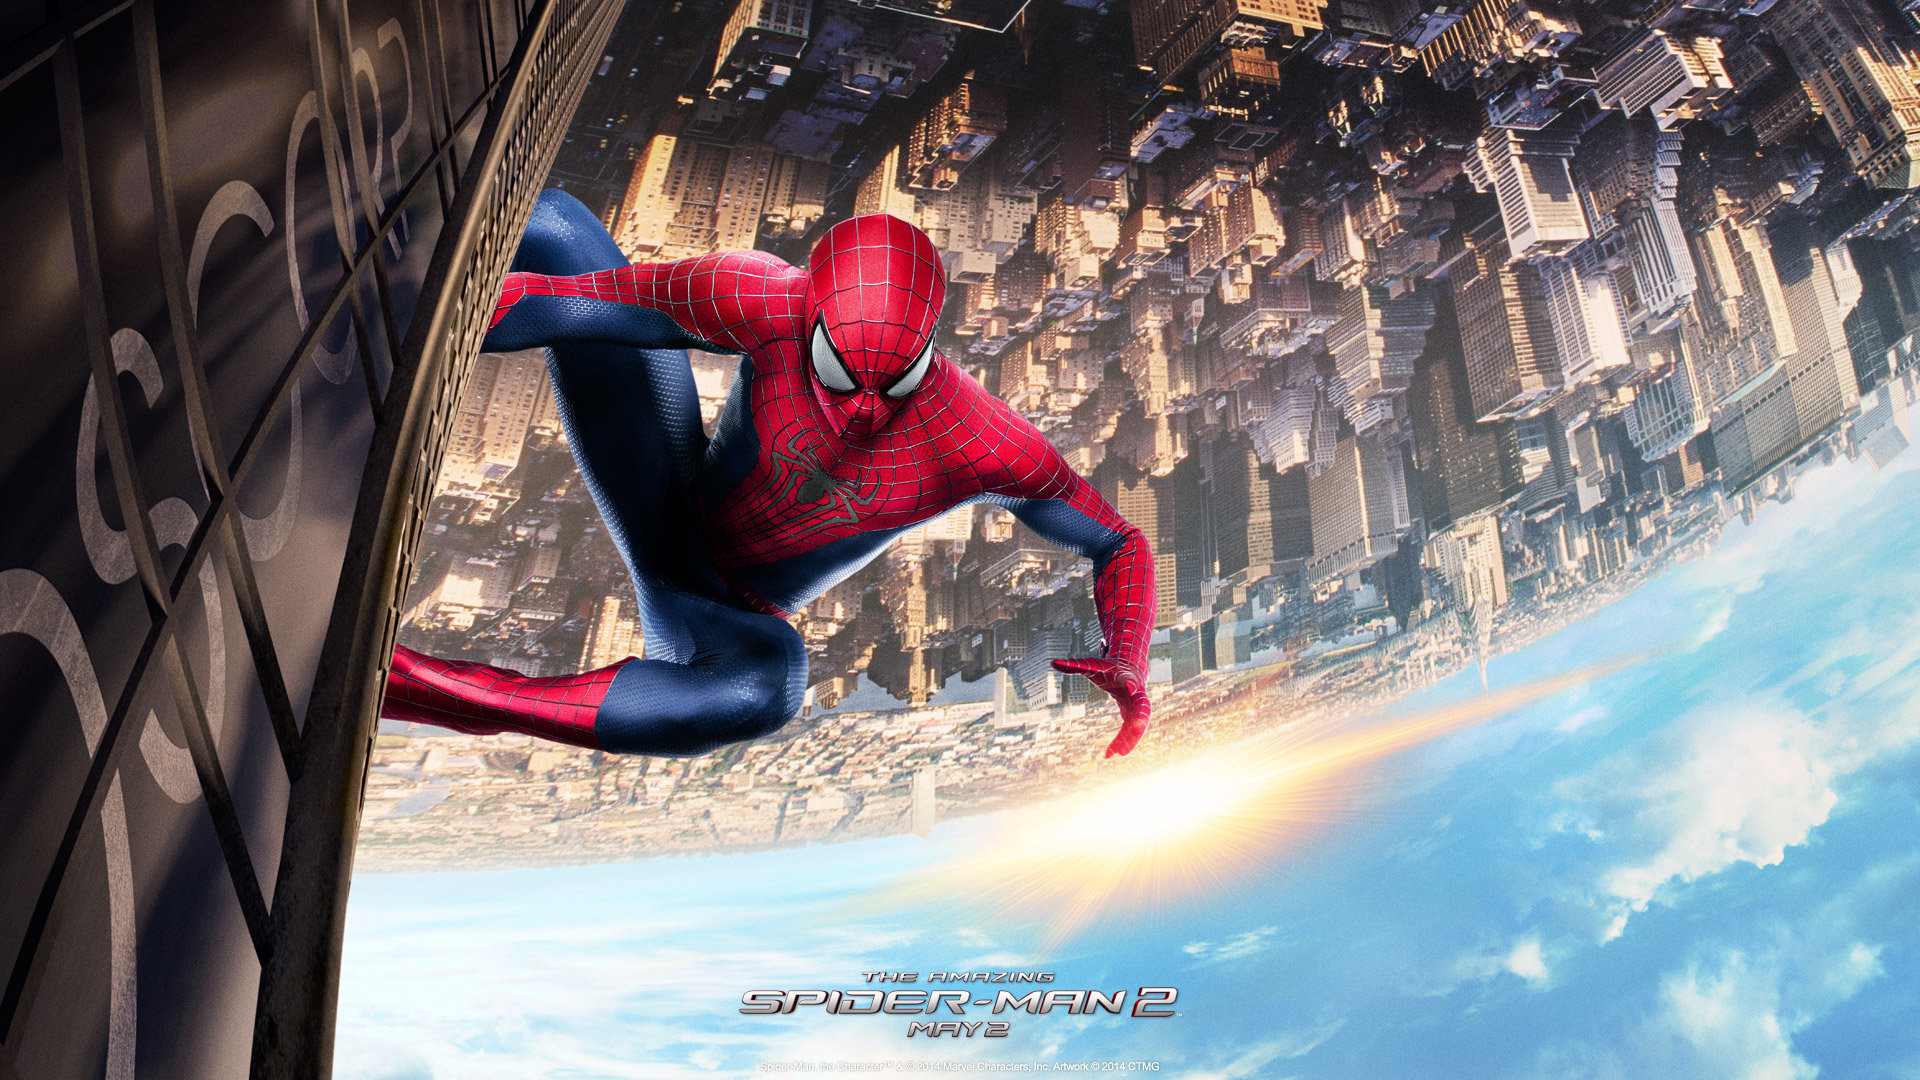 High Resolution The Amazing Spider Man 2 1080p Wallpaper ID102237 For Desktop 1920x1080